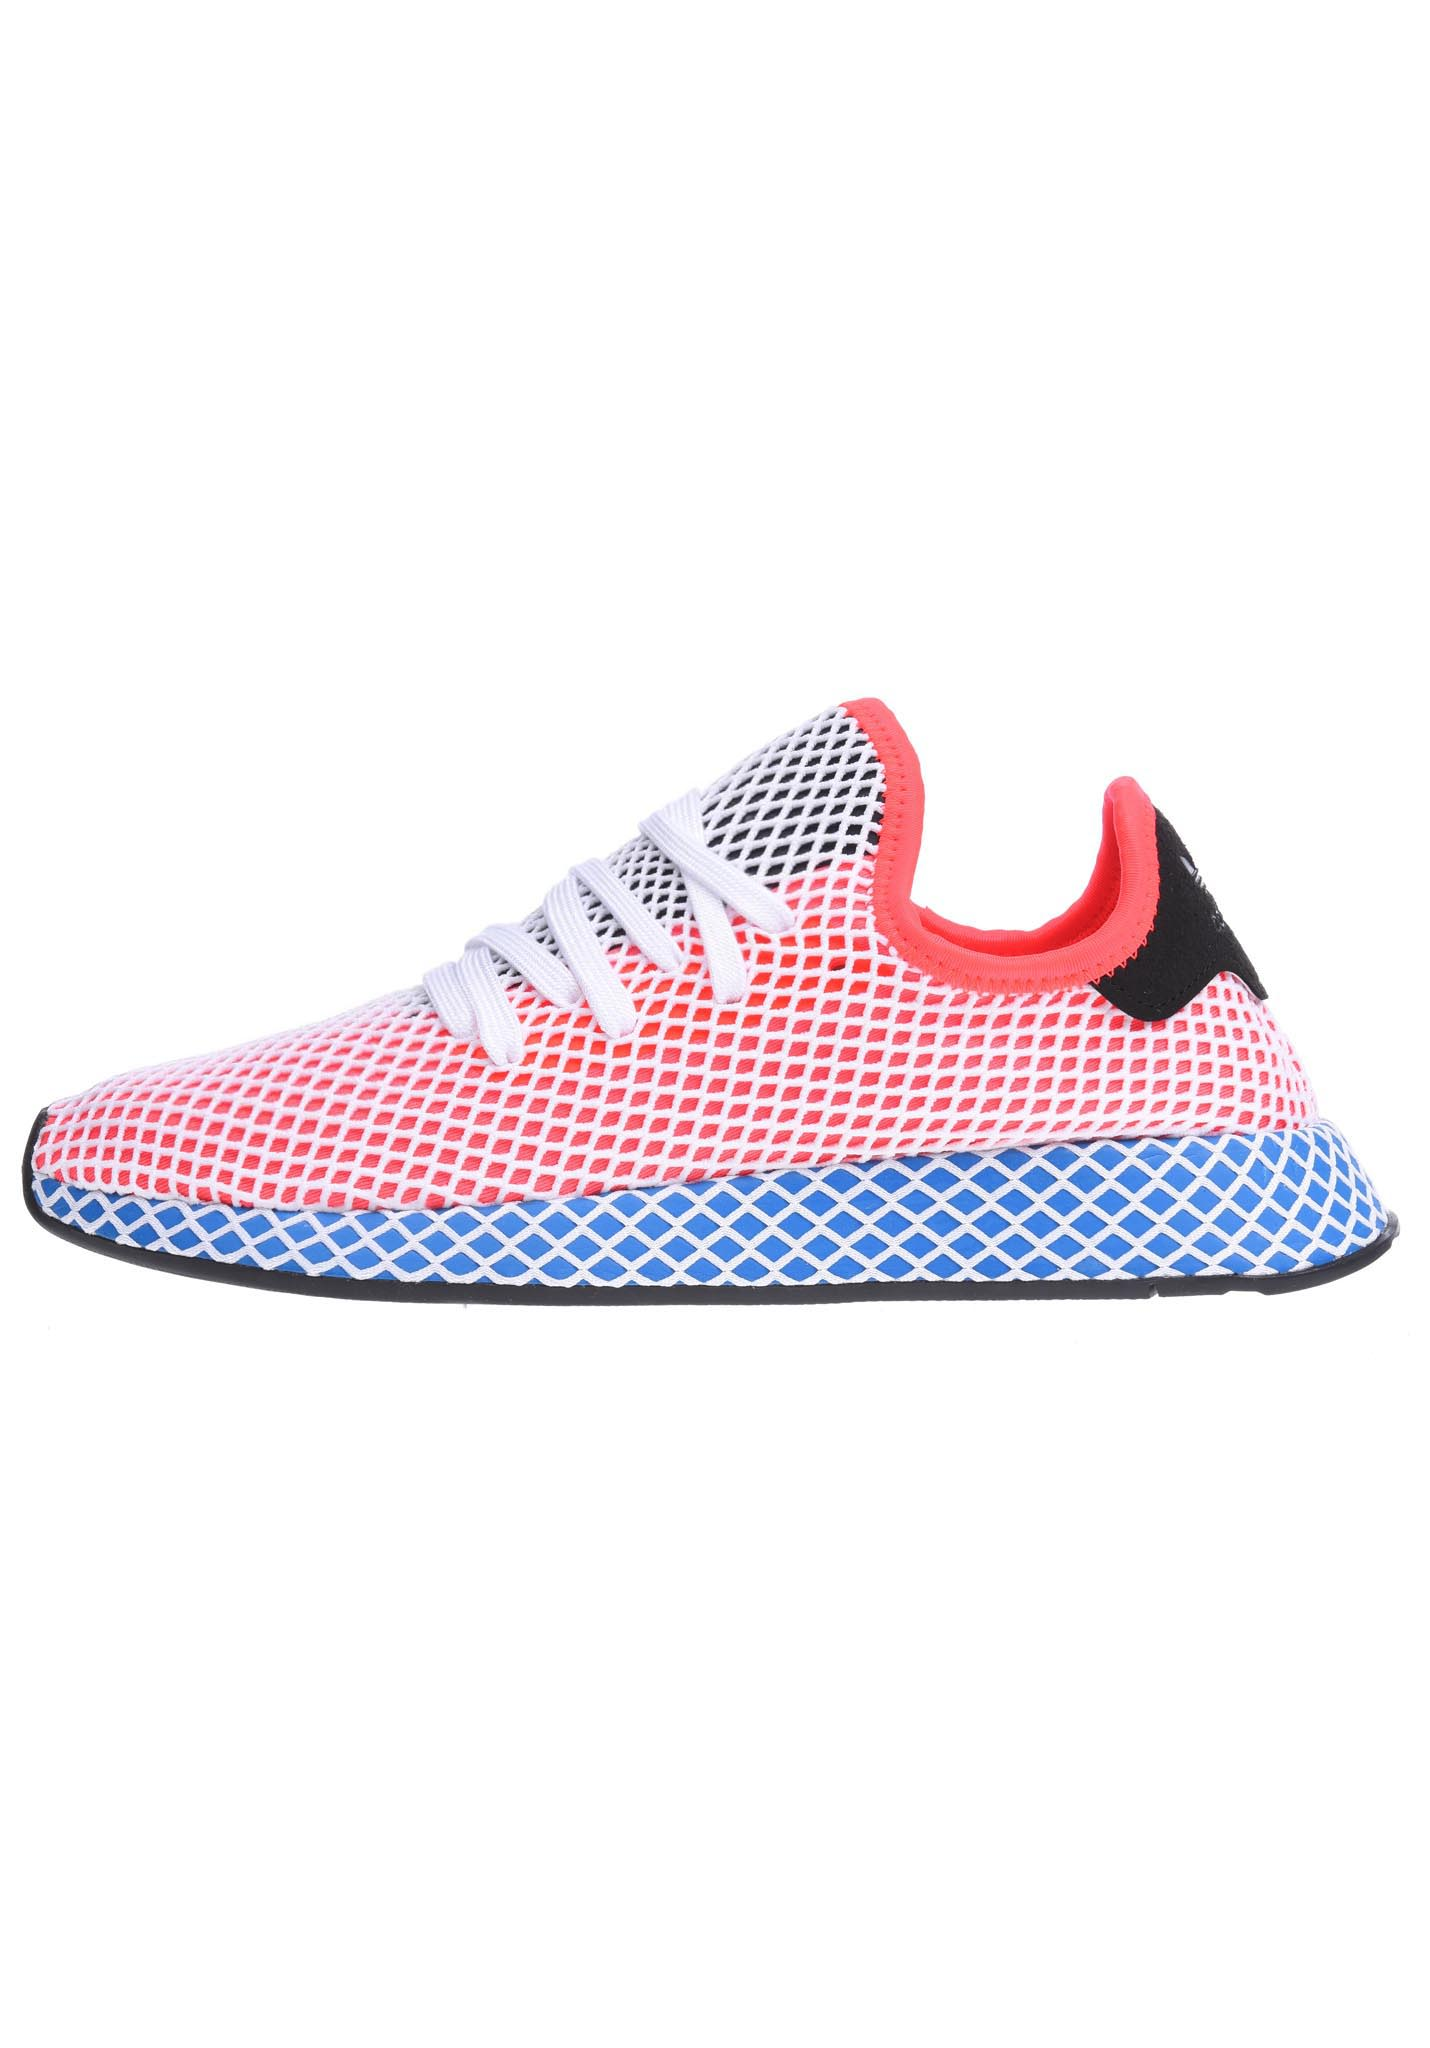 new product f6a7d d55ef ADIDAS ORIGINALS Deerupt Runner - Sneakers for Men - Red - P